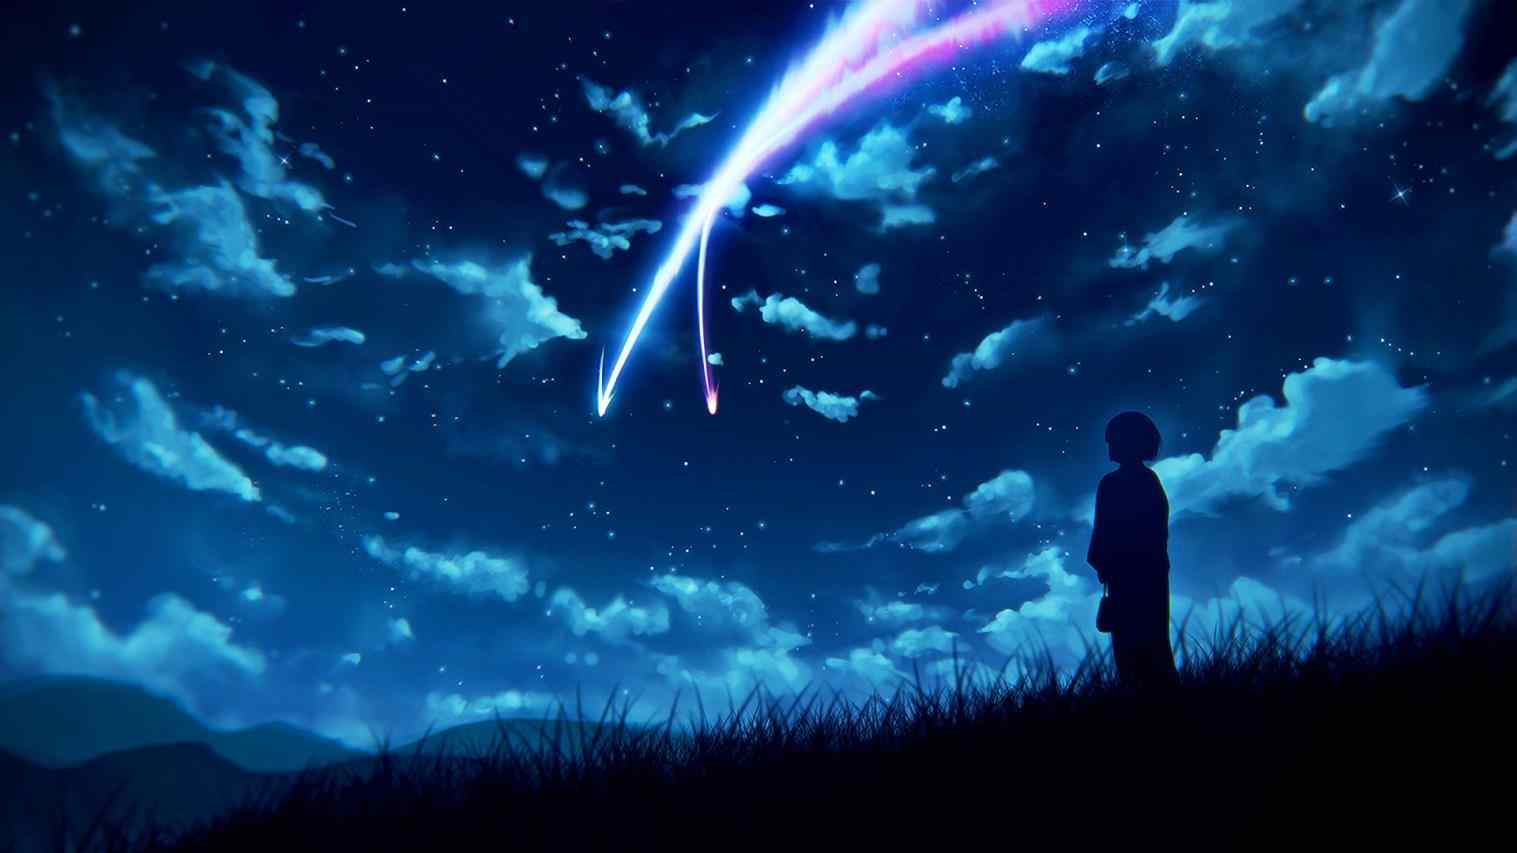 Blue anime scenery wallpapers top free blue anime - Blue anime wallpaper ...